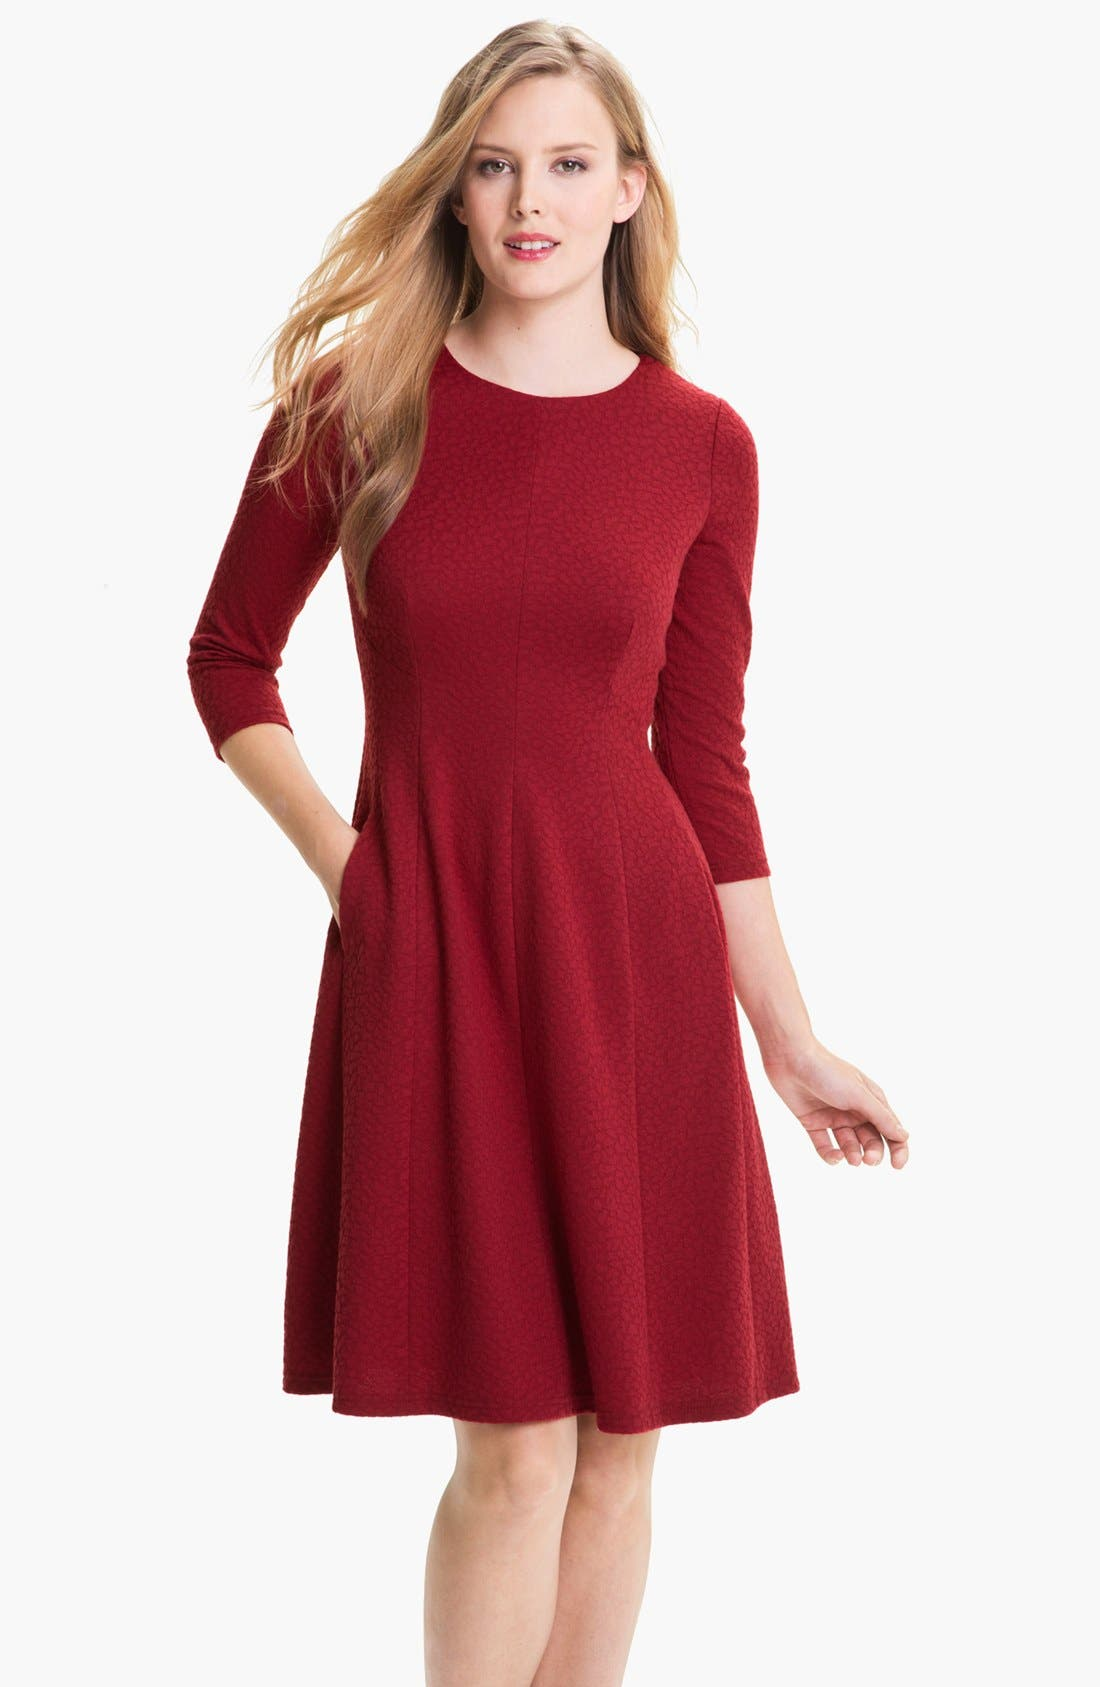 Alternate Image 1 Selected - Adrianna Papell Textured Ponte Fit & Flare Dress (Petite)